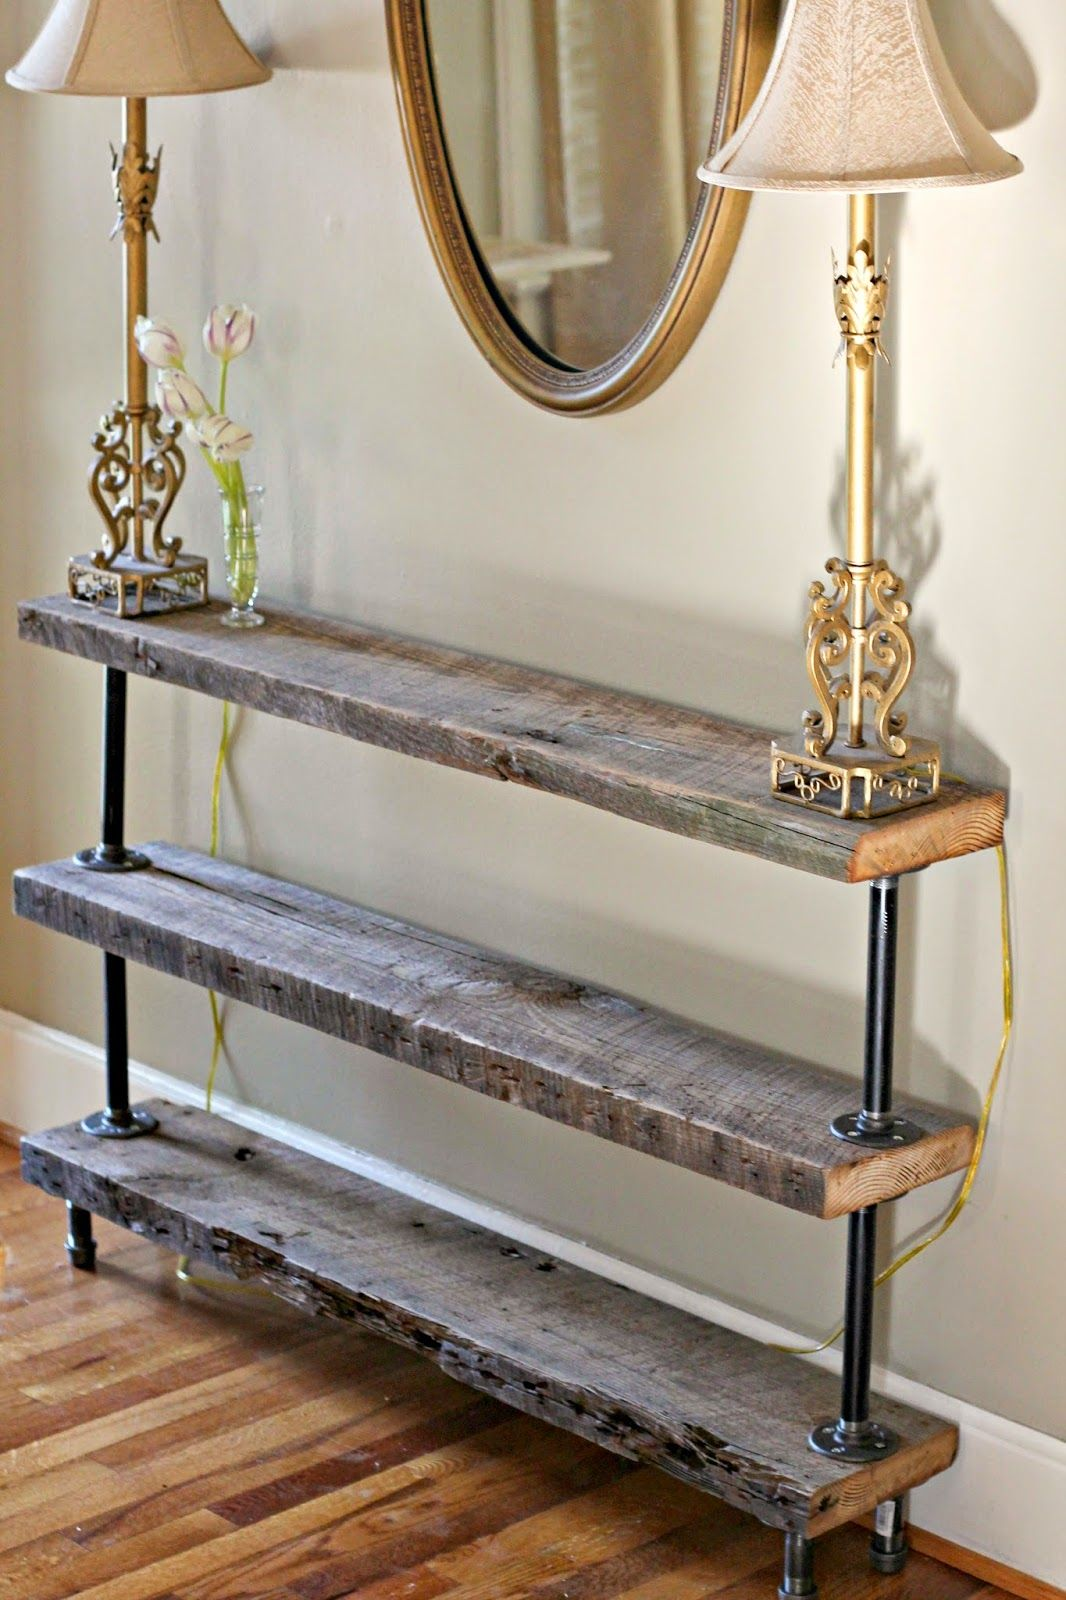 DIY Reclaimed Wood Console Table - DIY Reclaimed Wood Console Table (The Reedy Review) Front Entry